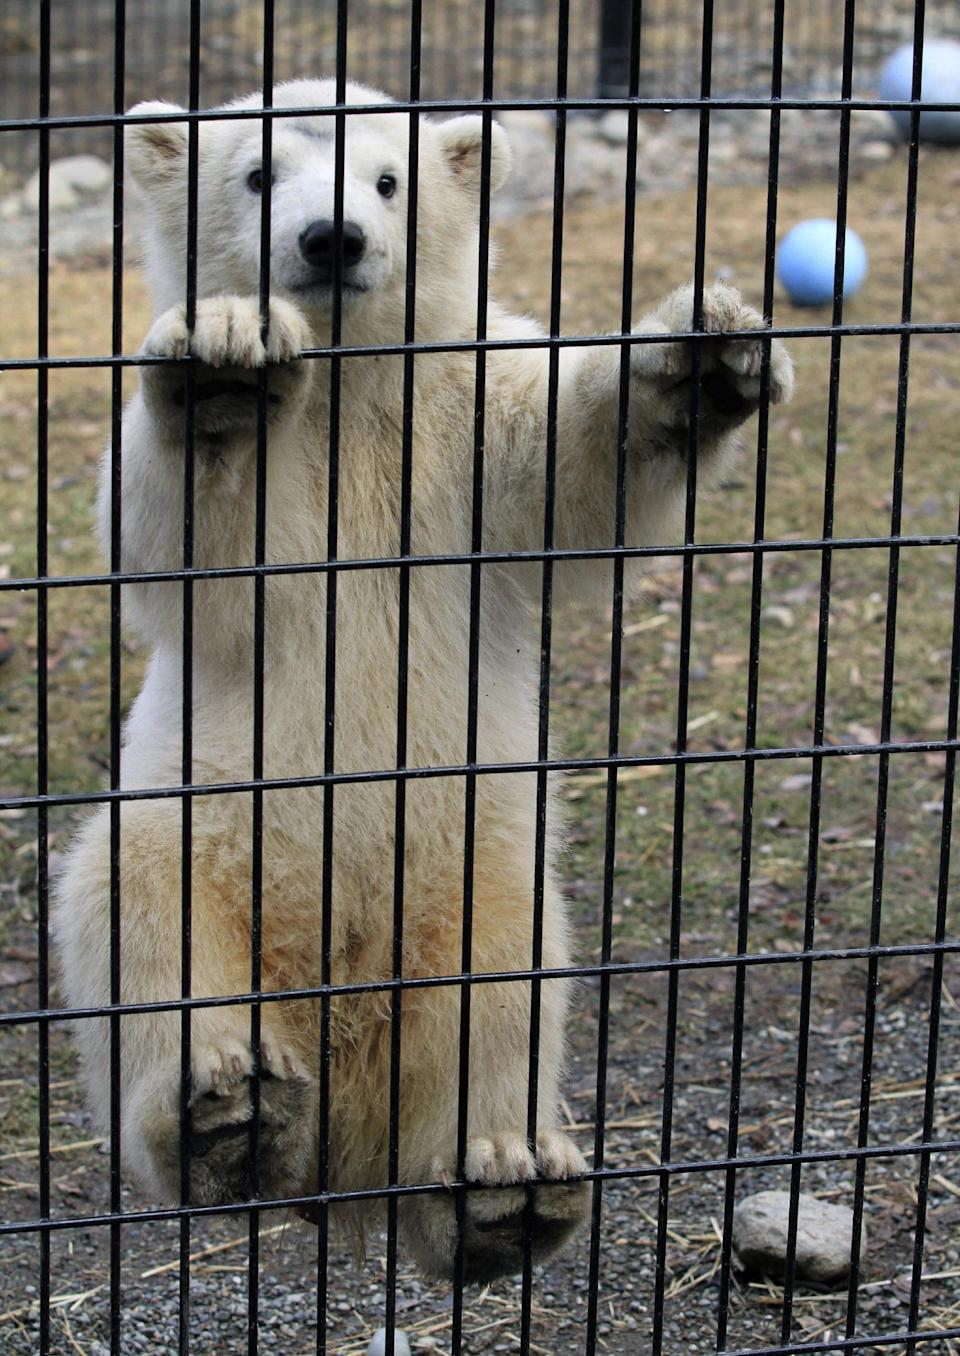 Kali, a polar bear cub orphaned when its mother was killed by a hunter in northwest Alaska, climbs the screen of his cage on Monday, May 13, 2013, at the Alaska Zoo in Anchorage, Alaska. UPS will fly the cub Tuesday to its new temporary home at the Buffalo Zoo. (AP Photo/Dan Joling)